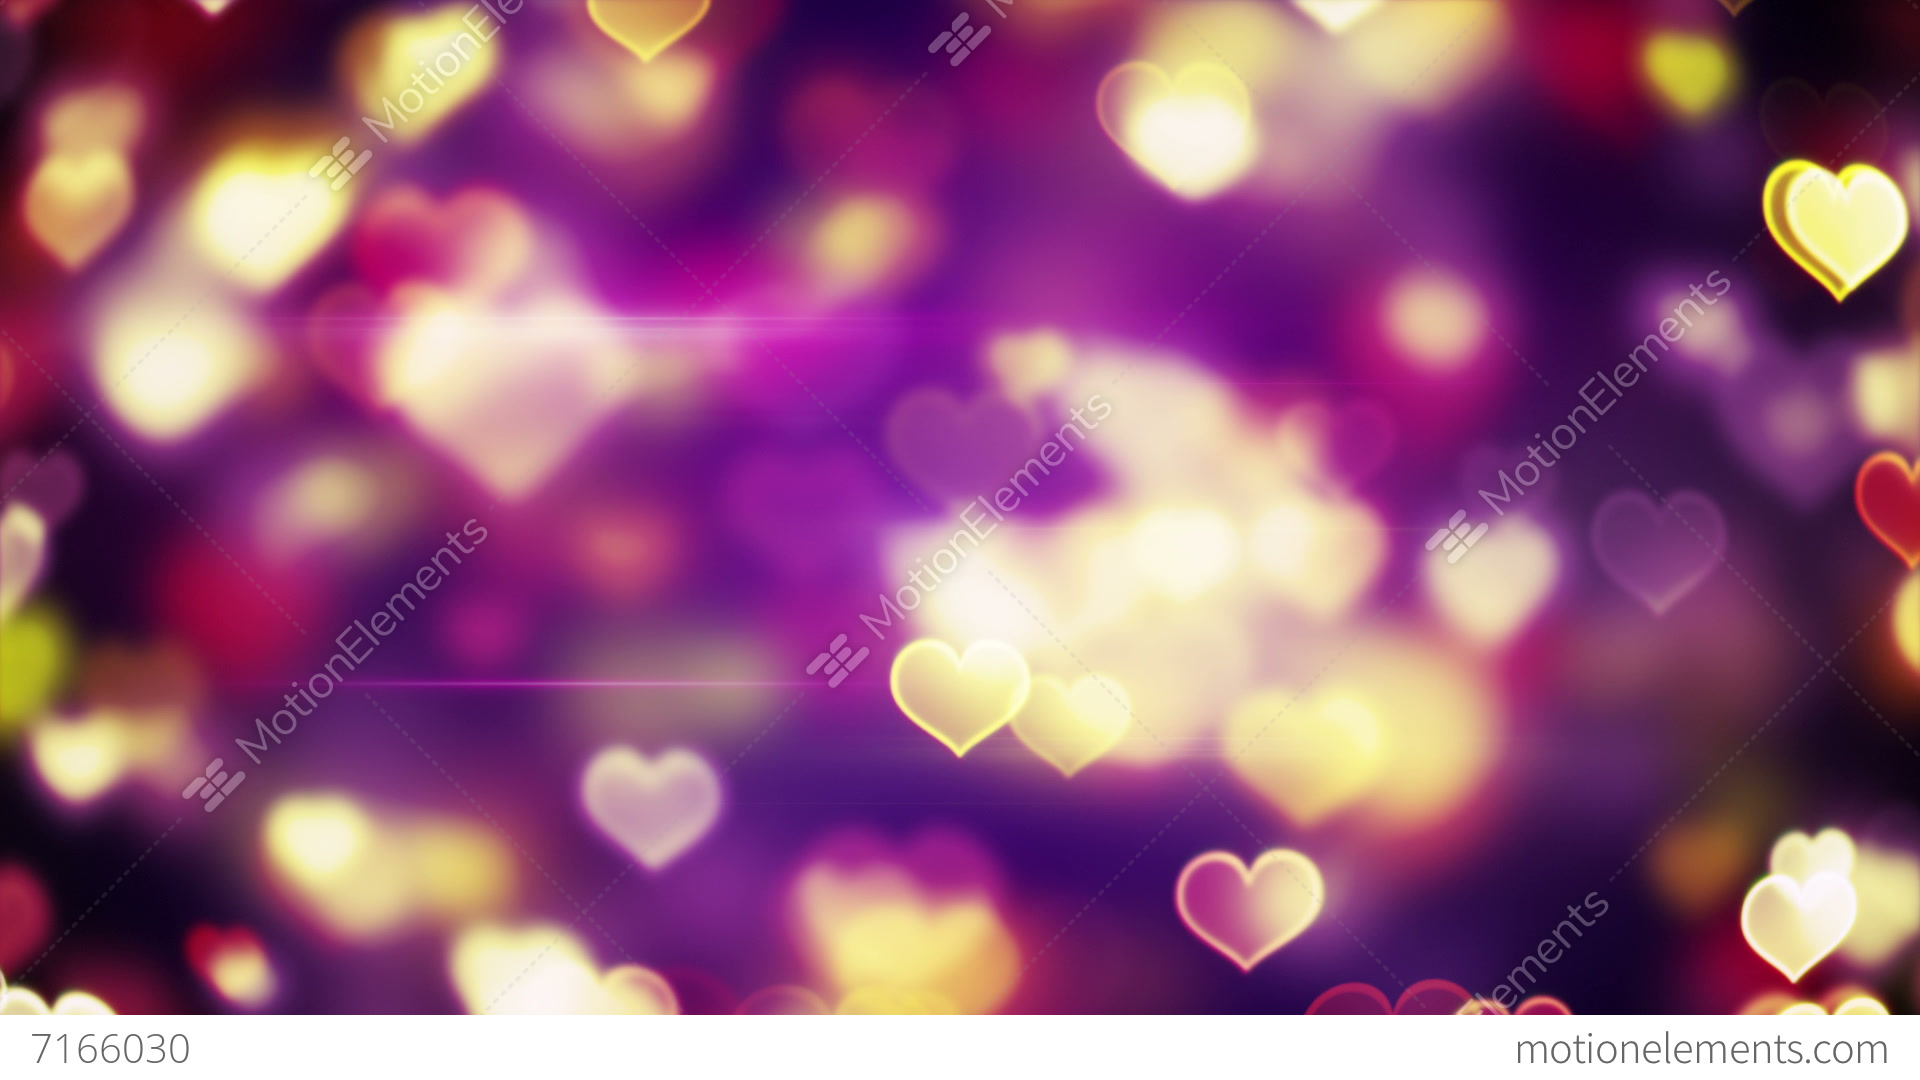 Bokeh Heart Shape Of Light Background Stock Footage Video: Glowing Heart Shapes Bokeh Lights Loopable Background